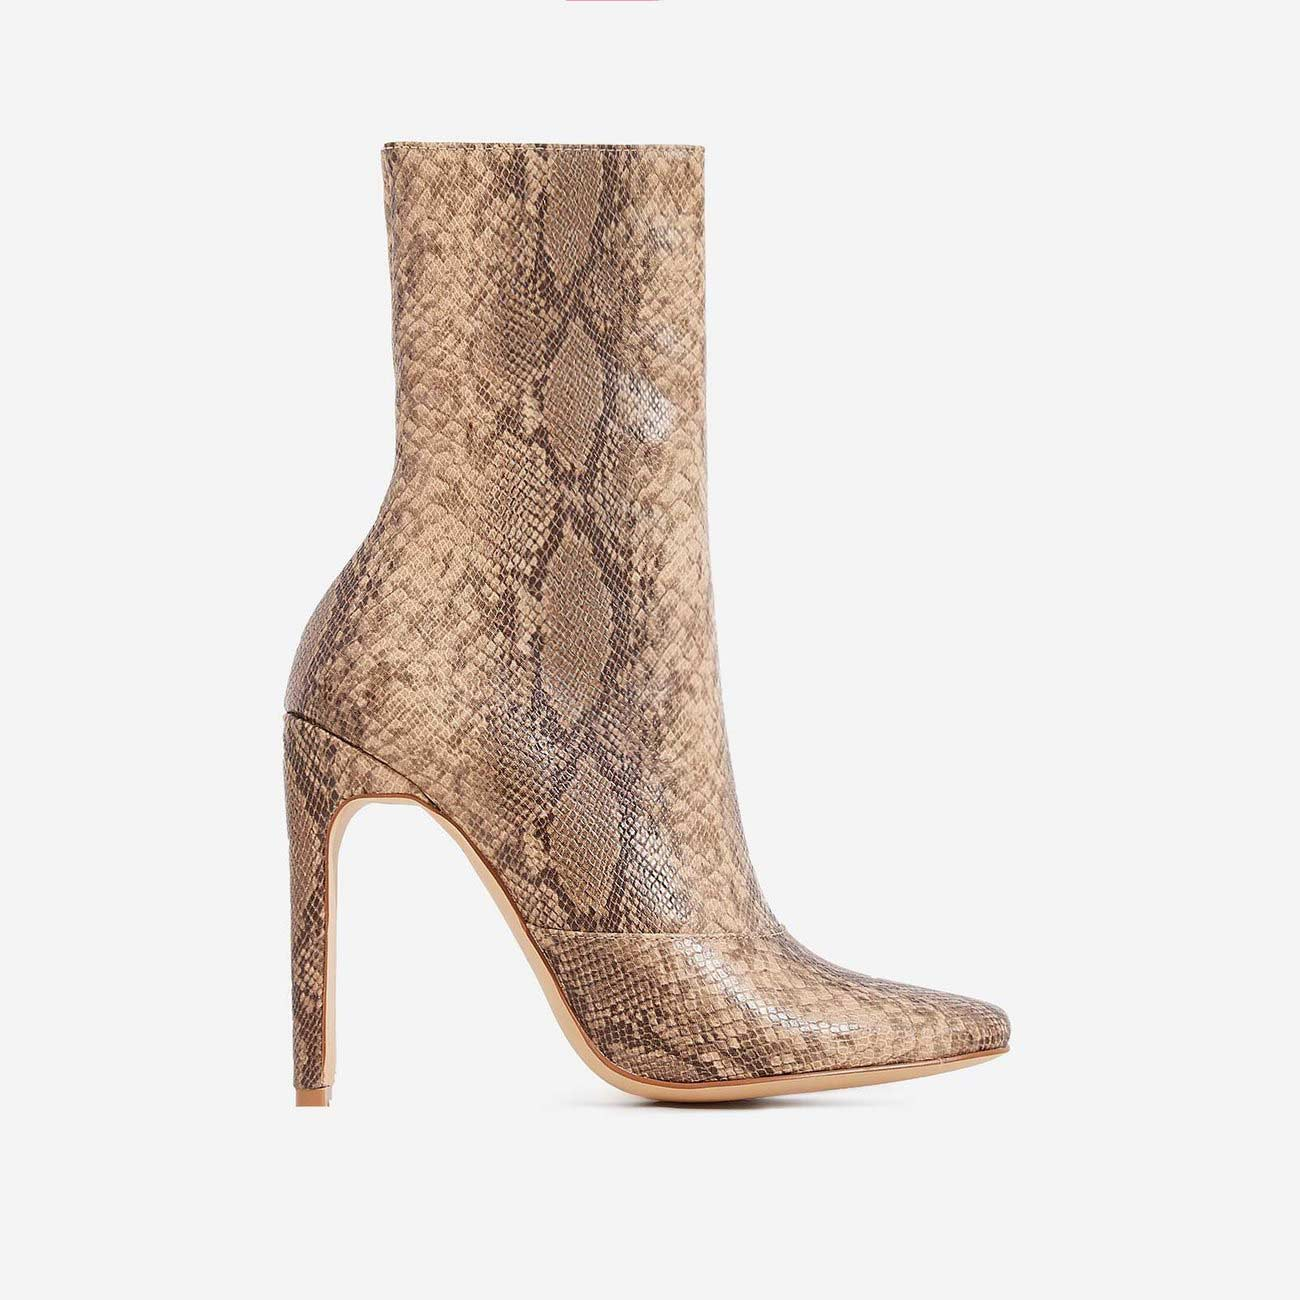 Boomslang Flat Heel Ankle Boot In Nude Snake Print Faux Leather